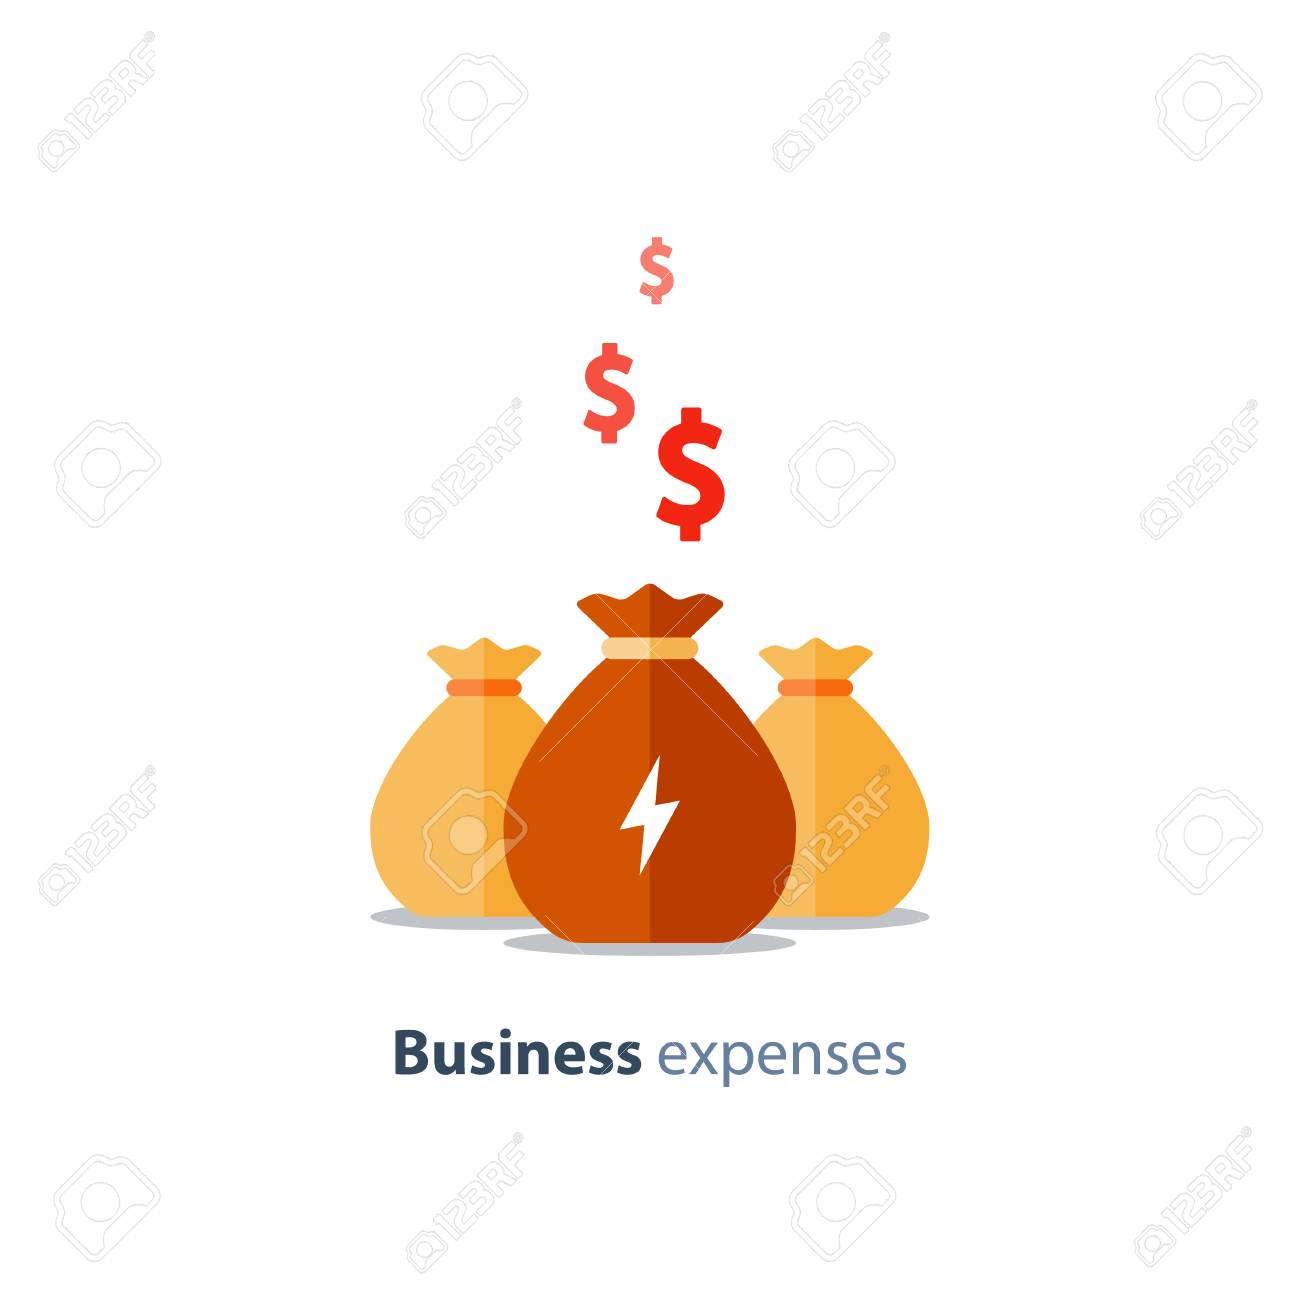 Business expenses, fundraising campaign, venture capital, asset evaluation, mutual fund, company dividends, long term investment portfolio, vector icon, flat illustration - 107083202